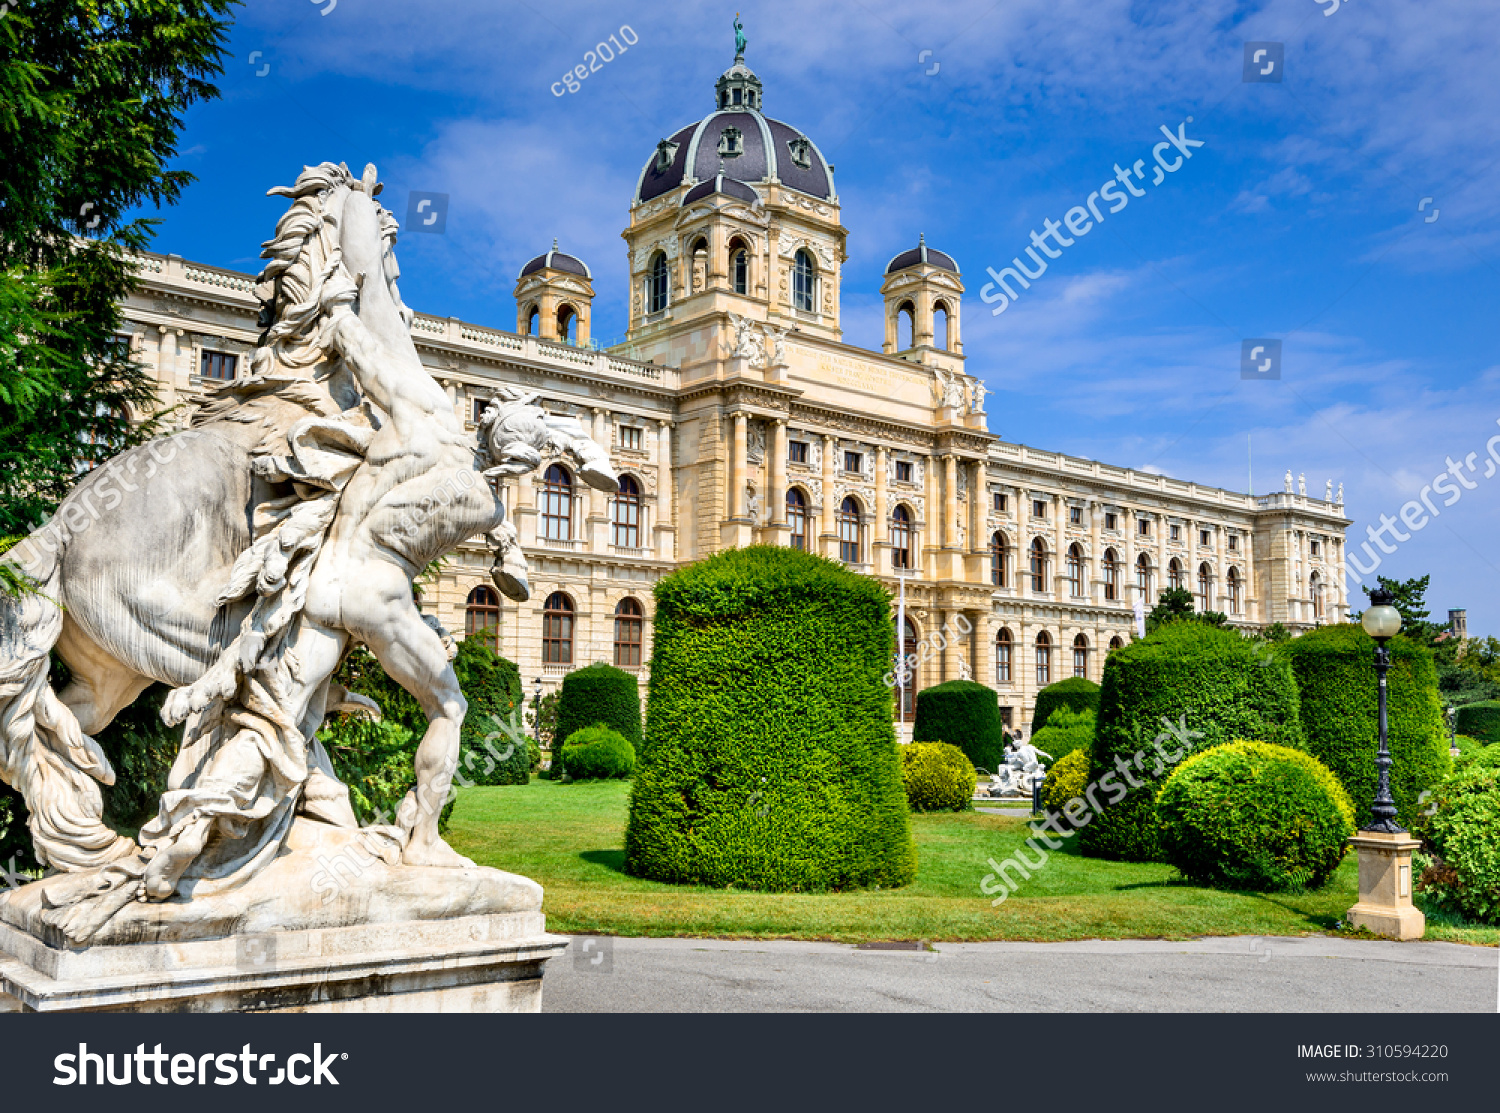 Vienna Austria Beautiful view of famous Naturhistorisches Museum Natural History Museum with park Maria-Theresien-Platz and sculpture in Vienna Austria